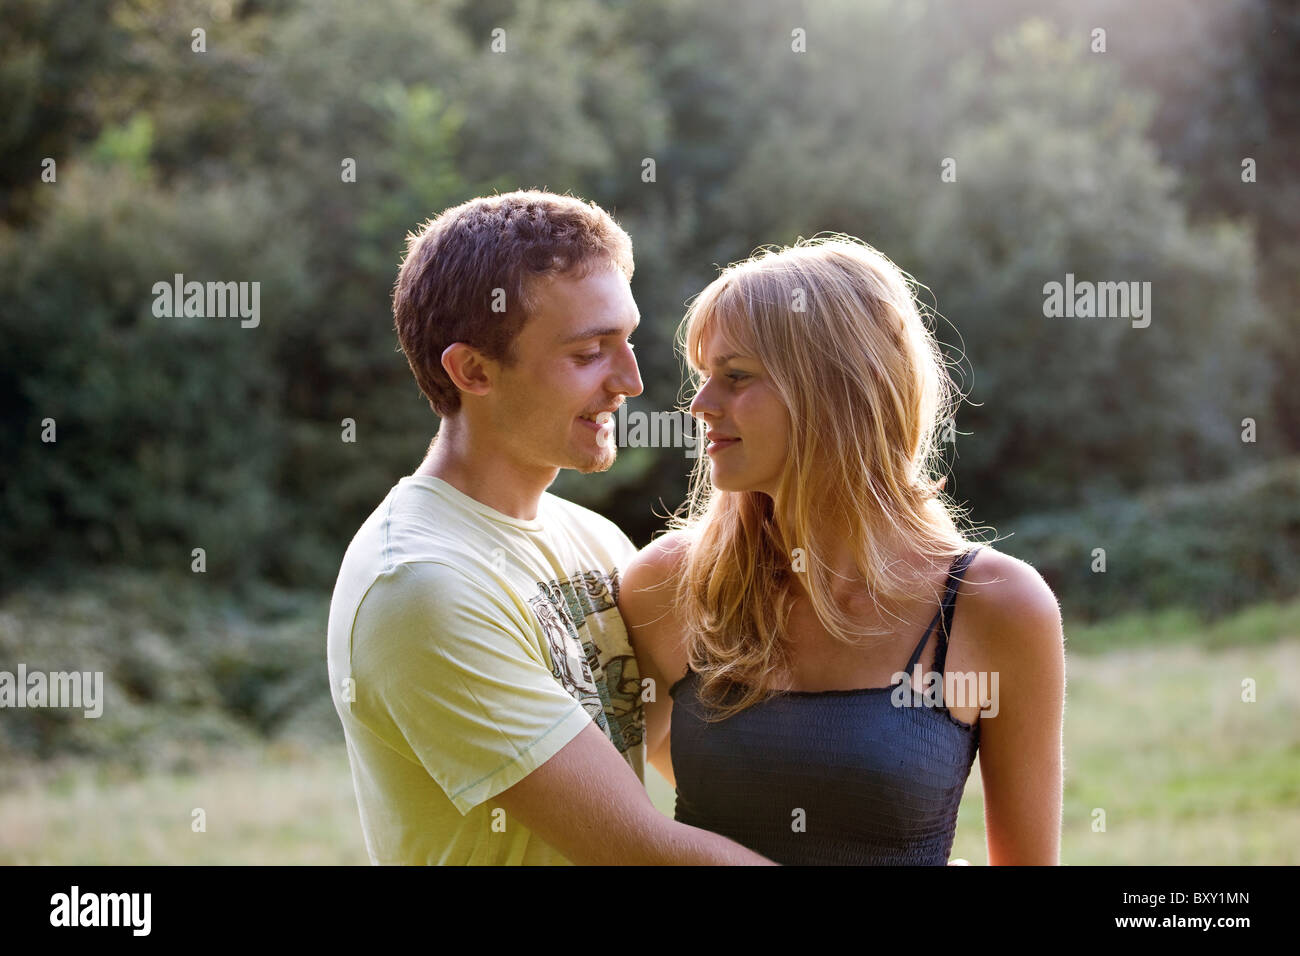 A romantic young couple standing outdoors - Stock Image